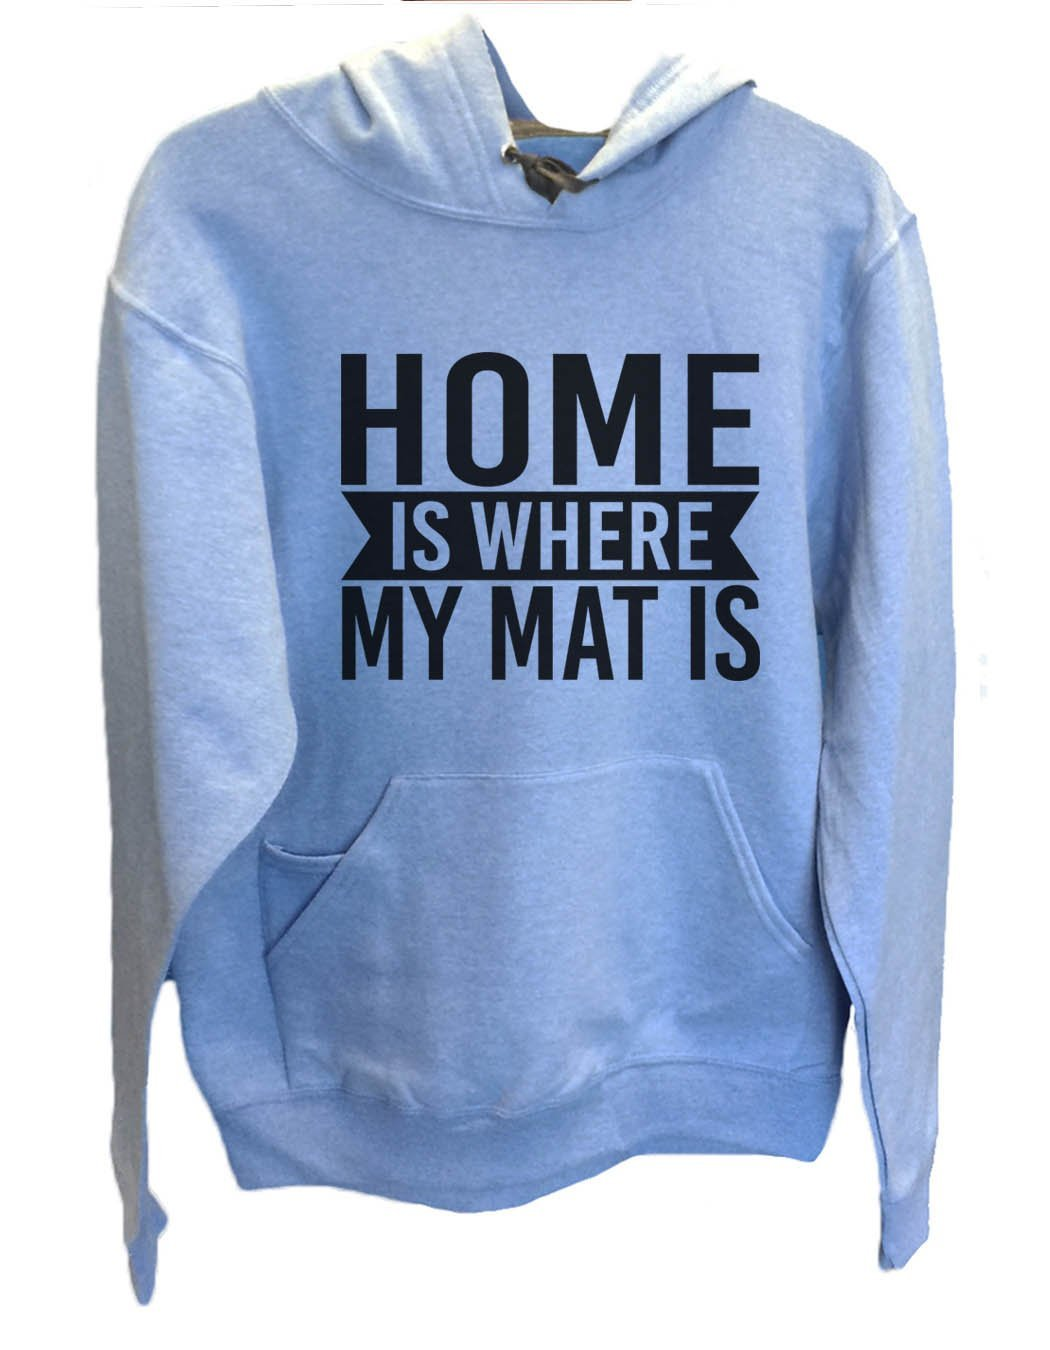 UNISEX HOODIE - Home Is Where My Mat Is - FUNNY MENS AND WOMENS HOODED SWEATSHIRTS - 2132 Funny Shirt Small / North Carolina Blue